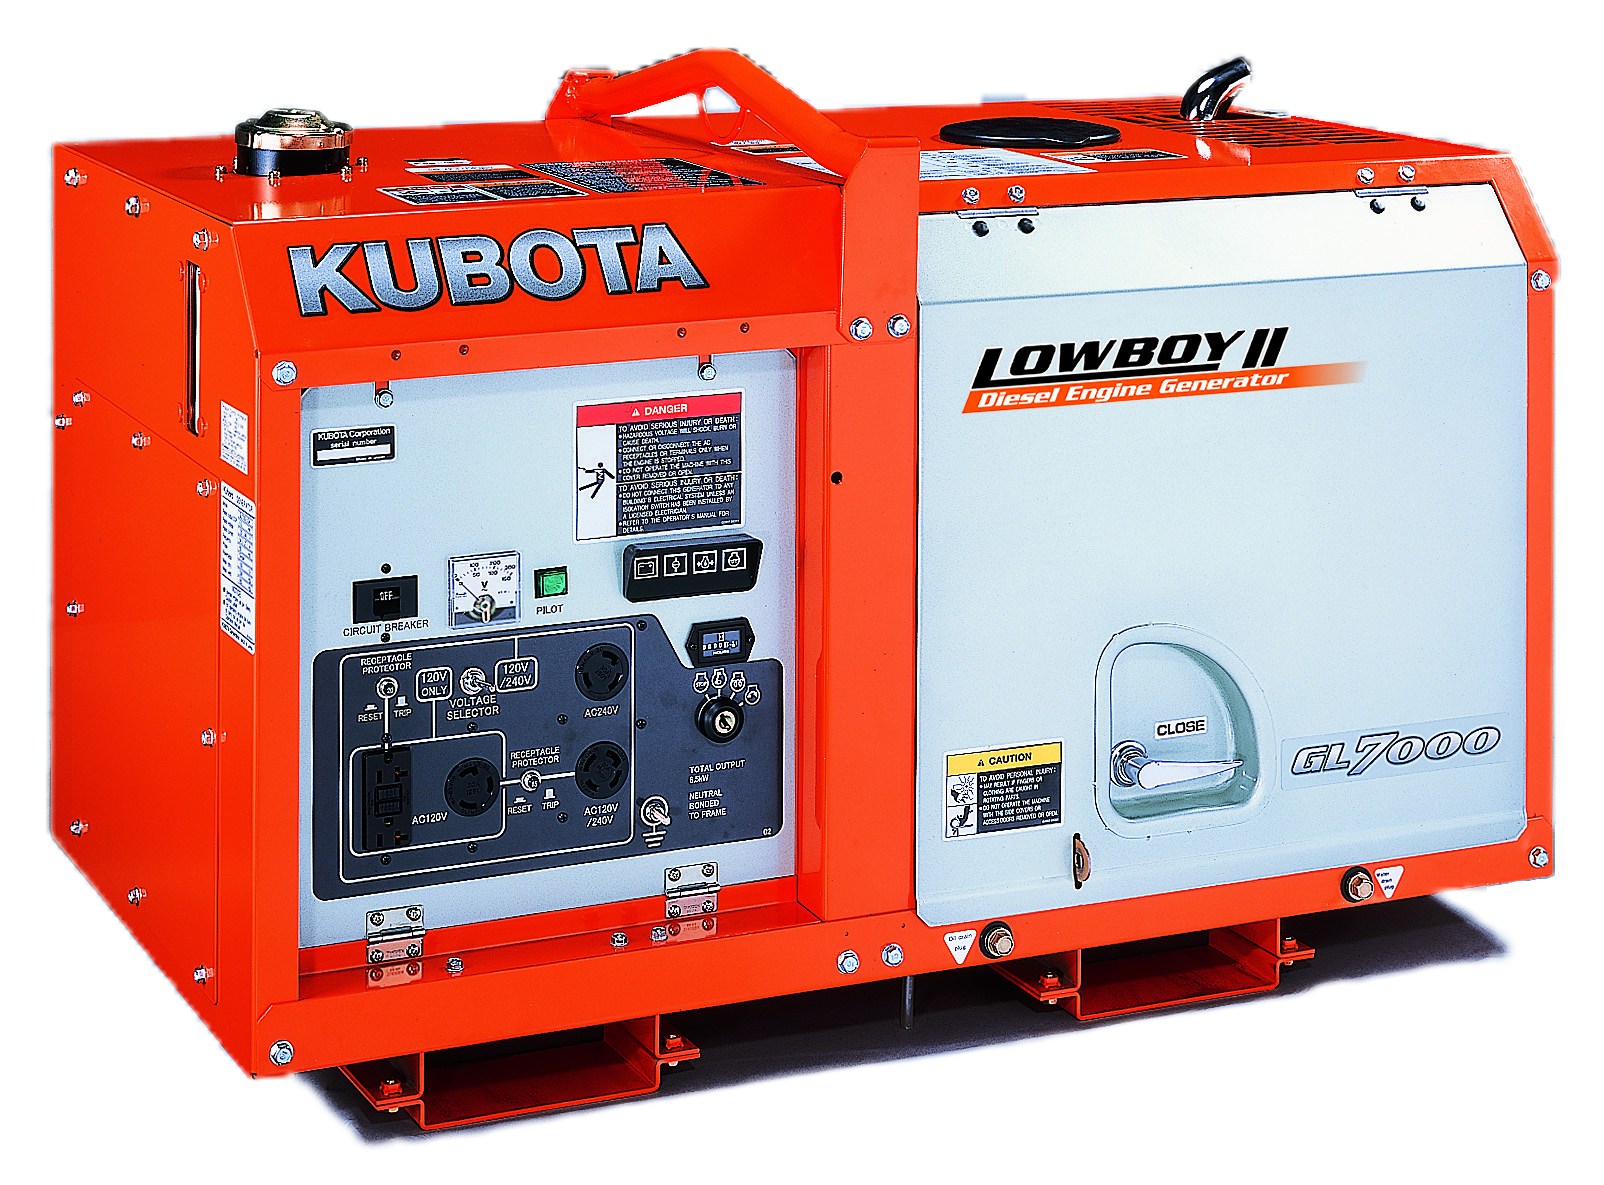 Kubota Lowboy Ii Compact Quiet Diesel Generator Gl7000 Absolute 120 240v Wiring Diagram 7 Kw Standby 65 Prime Single Phase 240 Volt Liquid Cooled